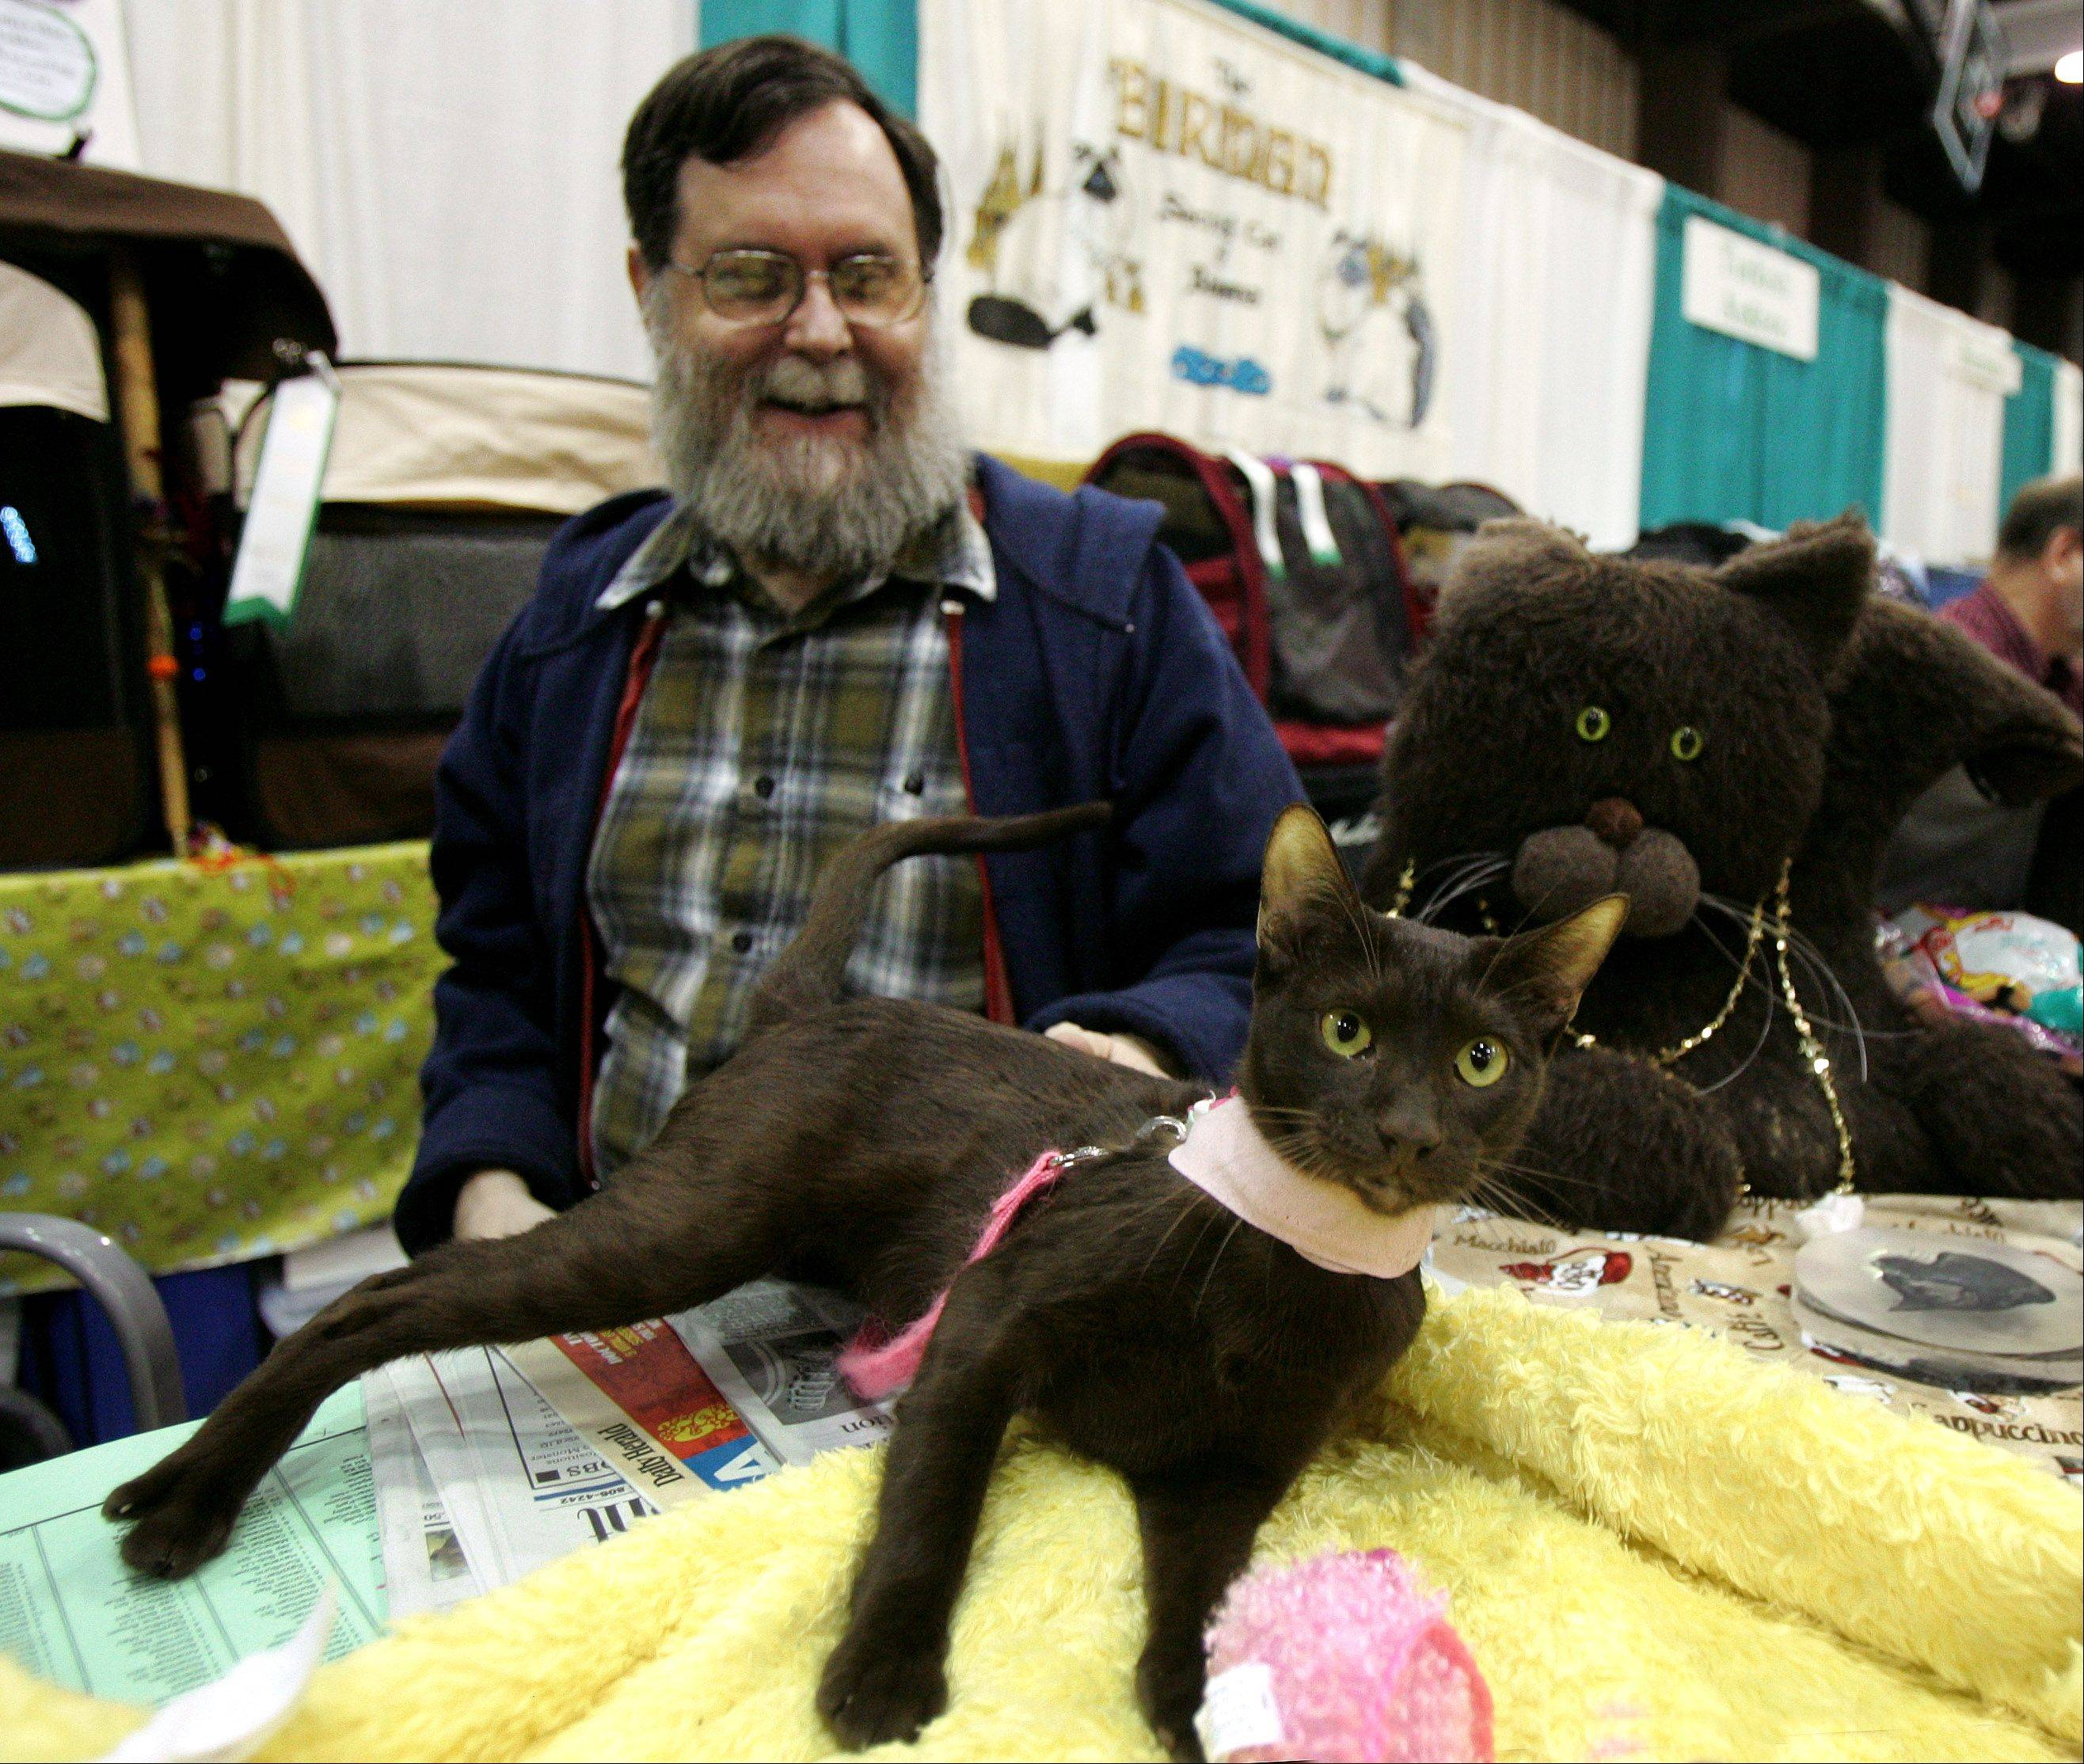 David McKerlie of Palatine plays with a Havana Brown named Kaapi Kriya during last year's Lincoln State Cat Show at Harper College in Palatine. More than 200 cats are expected to compete in this year's show, according to Marci Baturin, show manager.